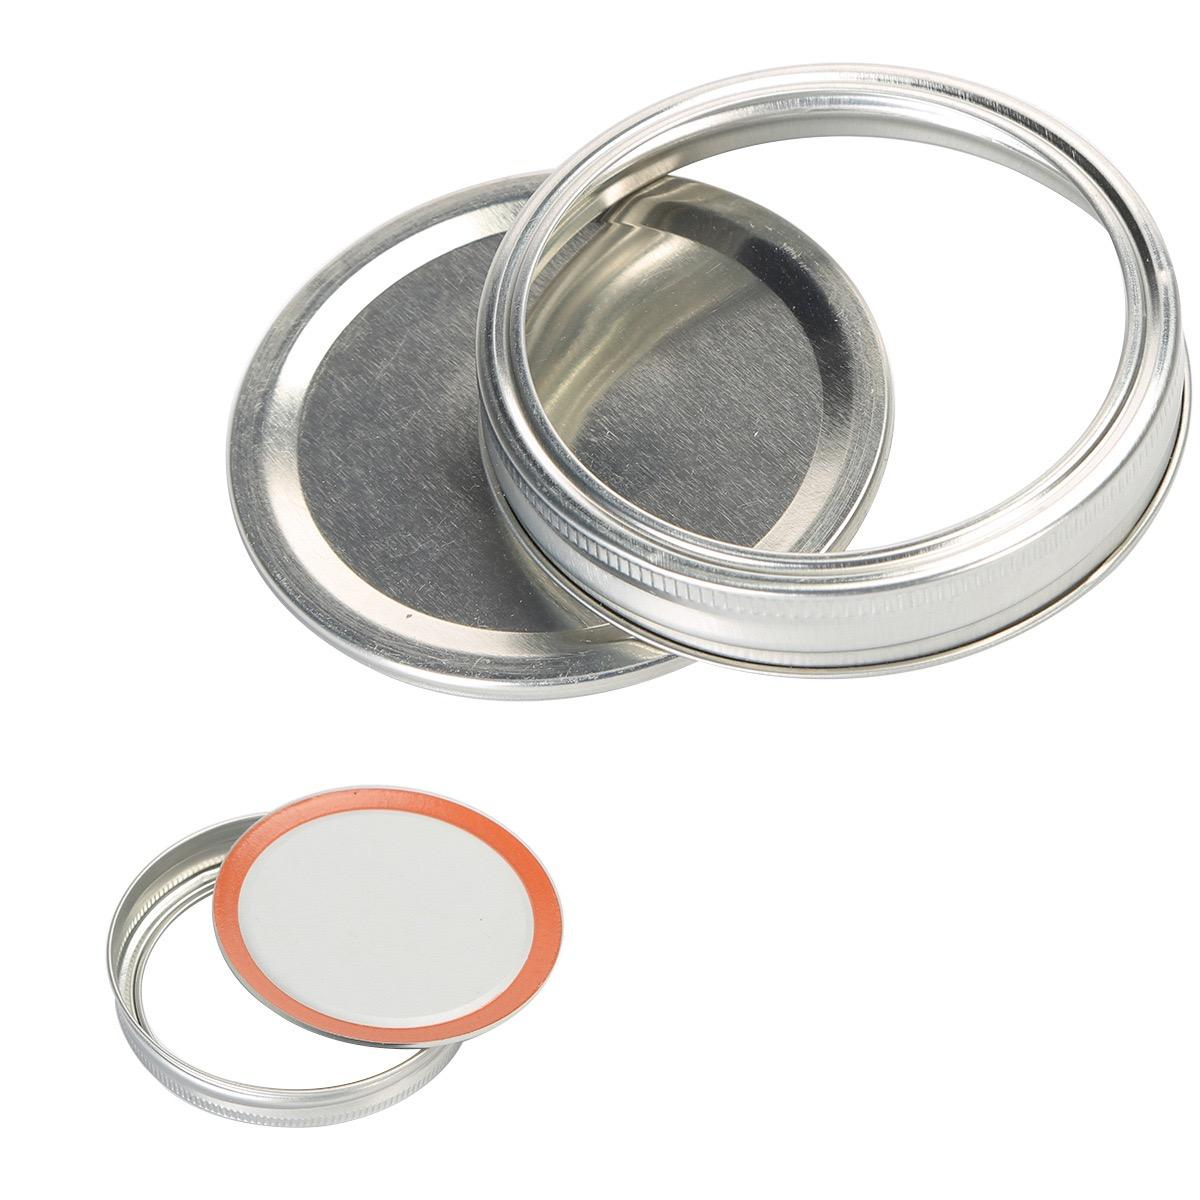 Mason Canning Covers Leak Proof Sealing Food Keeping Fresh Mason Canning Jar Lids With Wide Mouth Kitchen Supplies